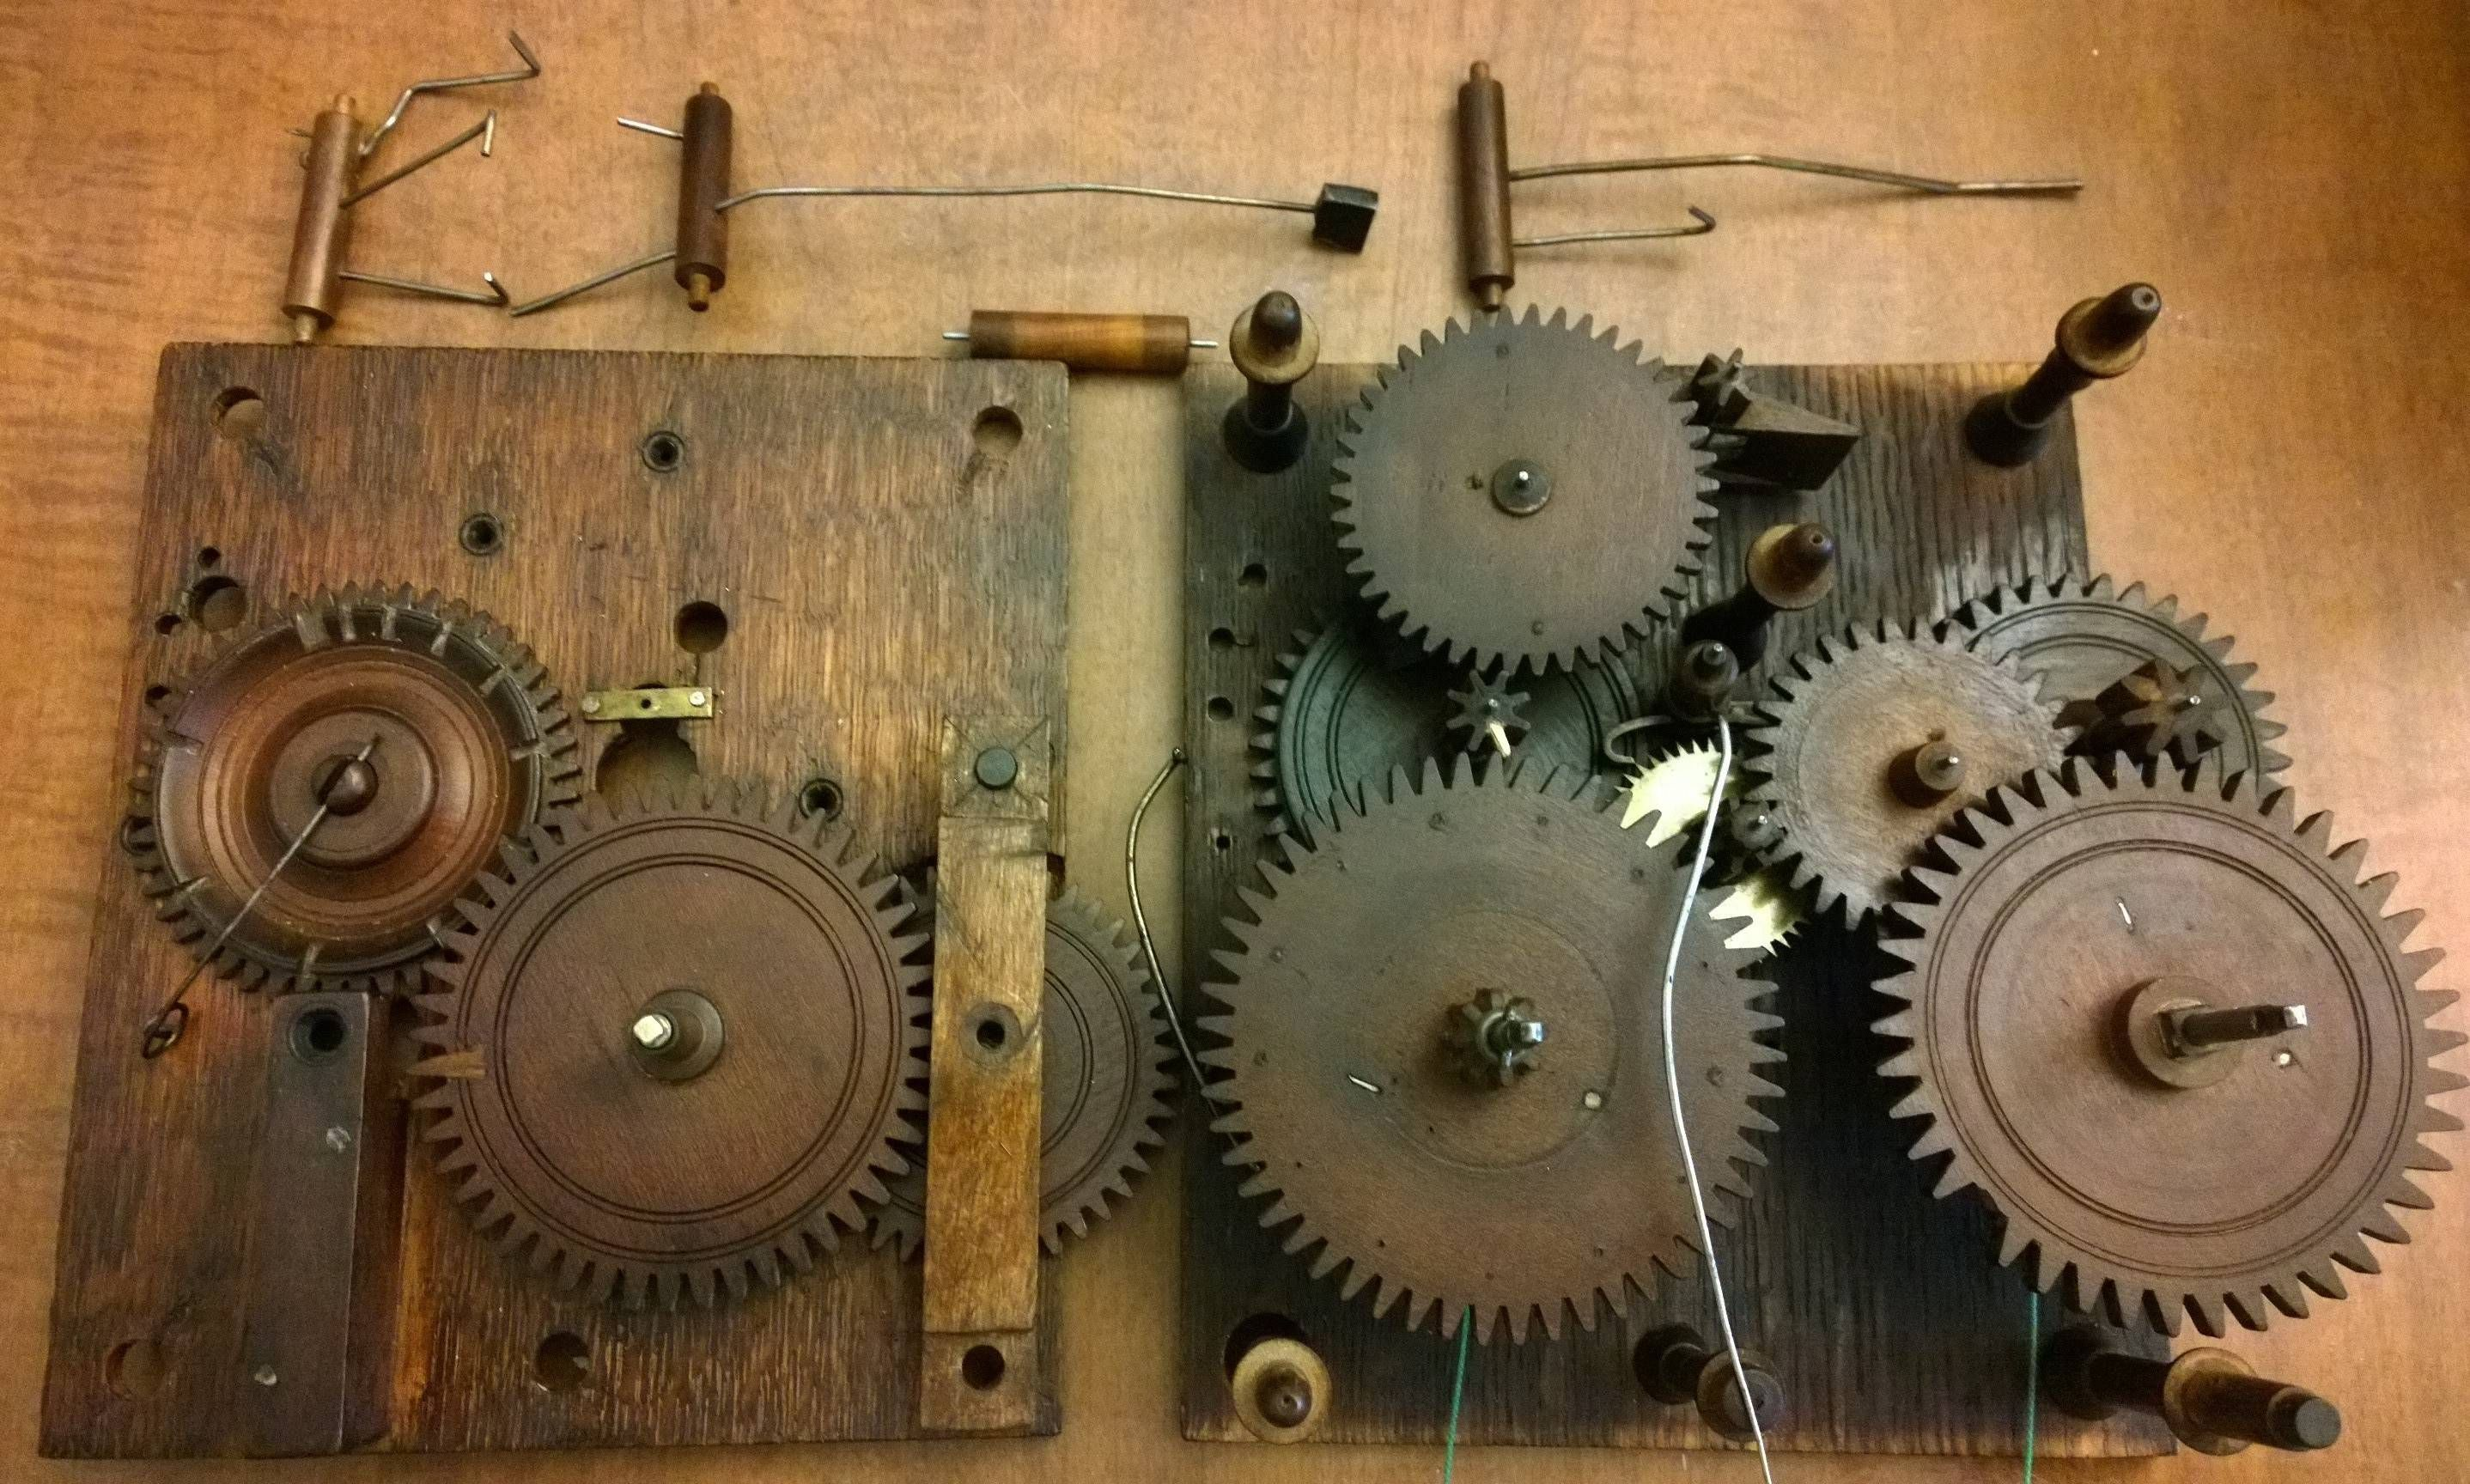 Wooden Gears From A 100 Year Old Clock I M Restoring Imgur Wooden Gear Clock Wooden Gears Old Clocks